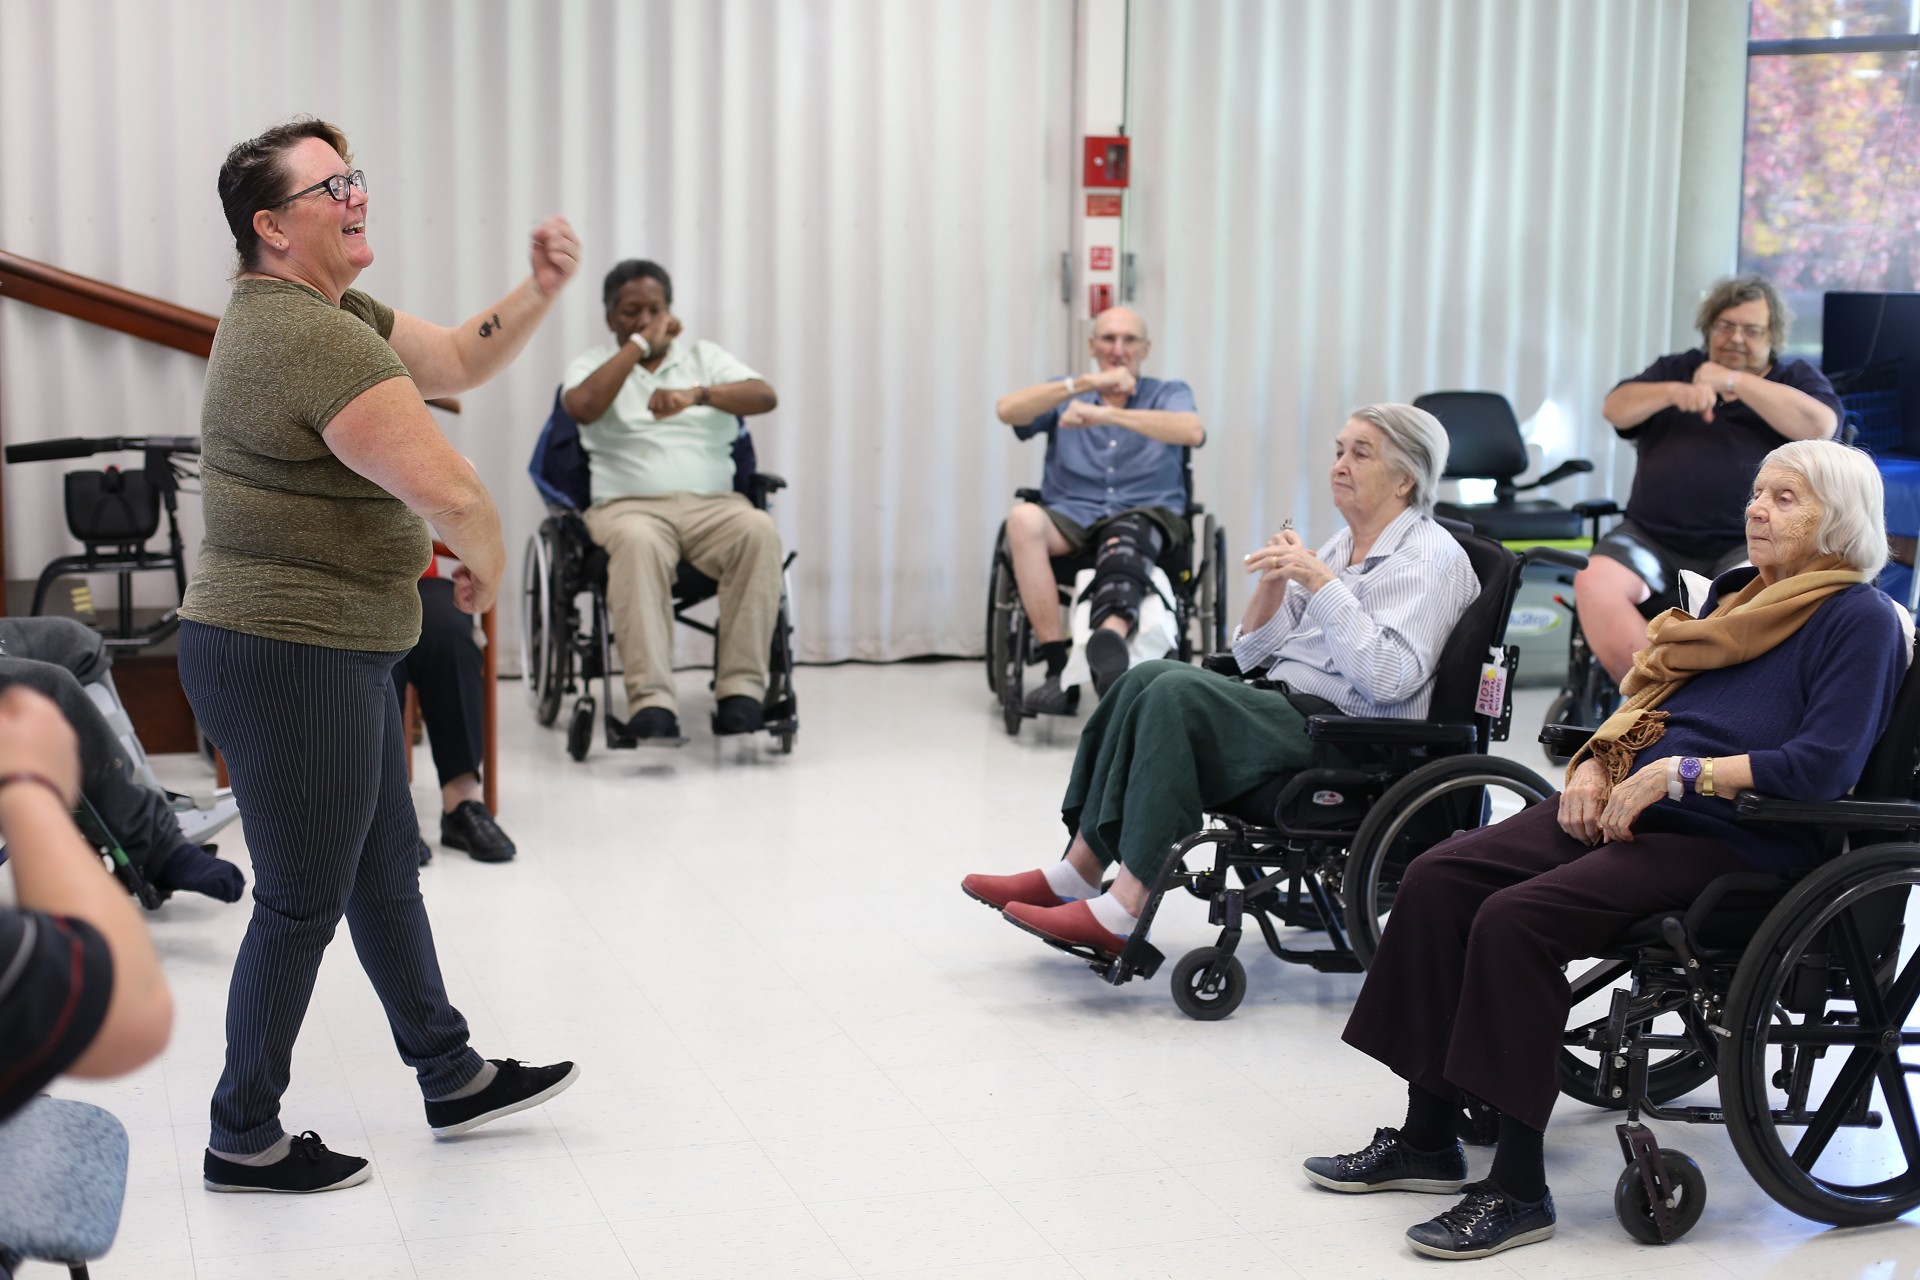 convalescent care - recovery and rehabilitation